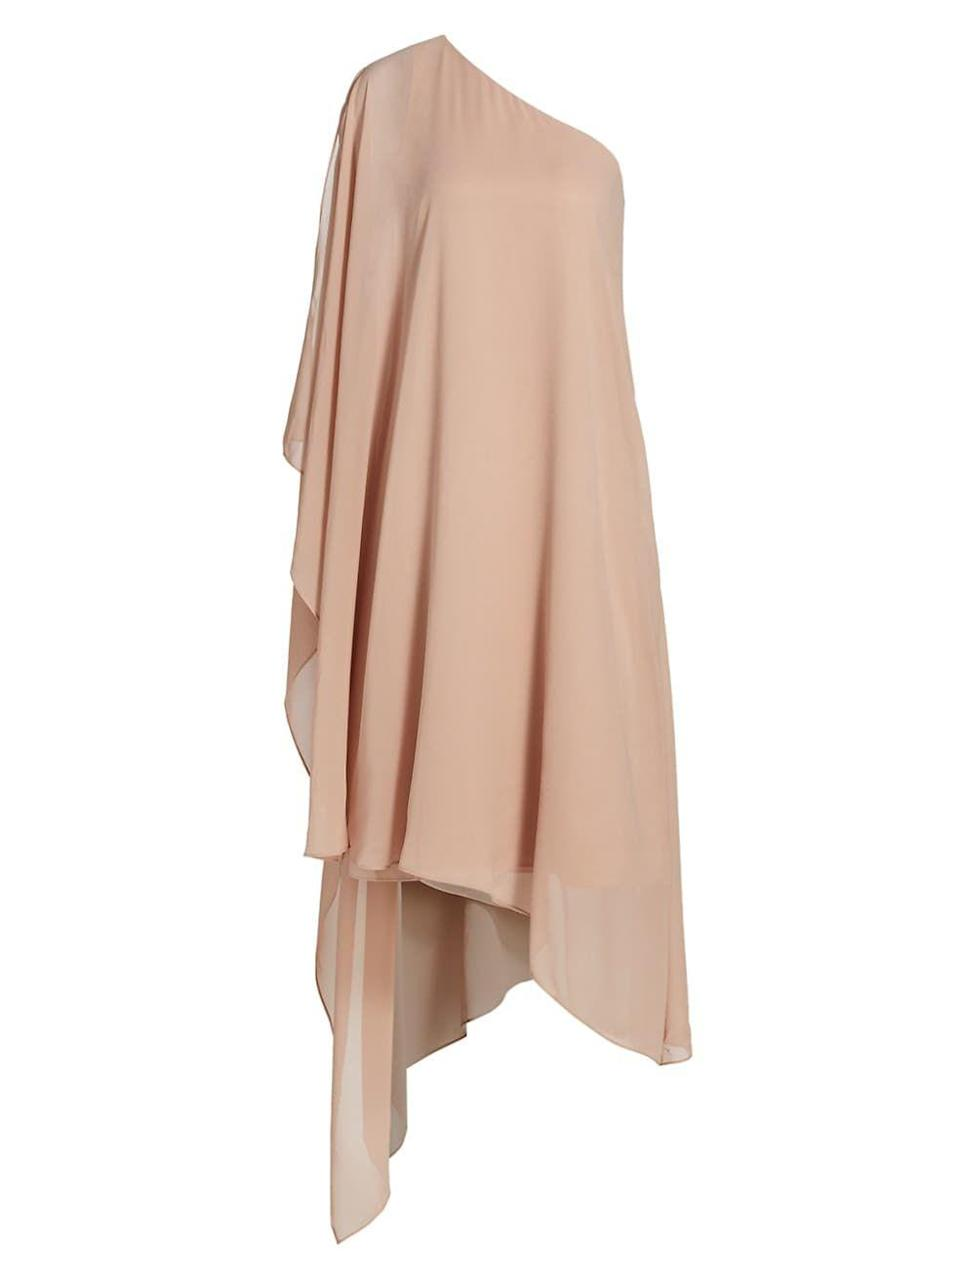 """<p><strong>Halston</strong></p><p>saksfifthavenue.com</p><p><strong>$595.00</strong></p><p><a href=""""https://go.redirectingat.com?id=74968X1596630&url=https%3A%2F%2Fwww.saksfifthavenue.com%2Fproduct%2Fhalston-ellie-draped-cocktail-dress-0400014836146.html&sref=https%3A%2F%2Fwww.townandcountrymag.com%2Fstyle%2Ffashion-trends%2Fg12096491%2Fbest-fall-wedding-guest-dresses%2F"""" rel=""""nofollow noopener"""" target=""""_blank"""" data-ylk=""""slk:Shop Now"""" class=""""link rapid-noclick-resp"""">Shop Now</a></p><p>This breezy taupe dress is certain to make n elegant entrance. </p>"""